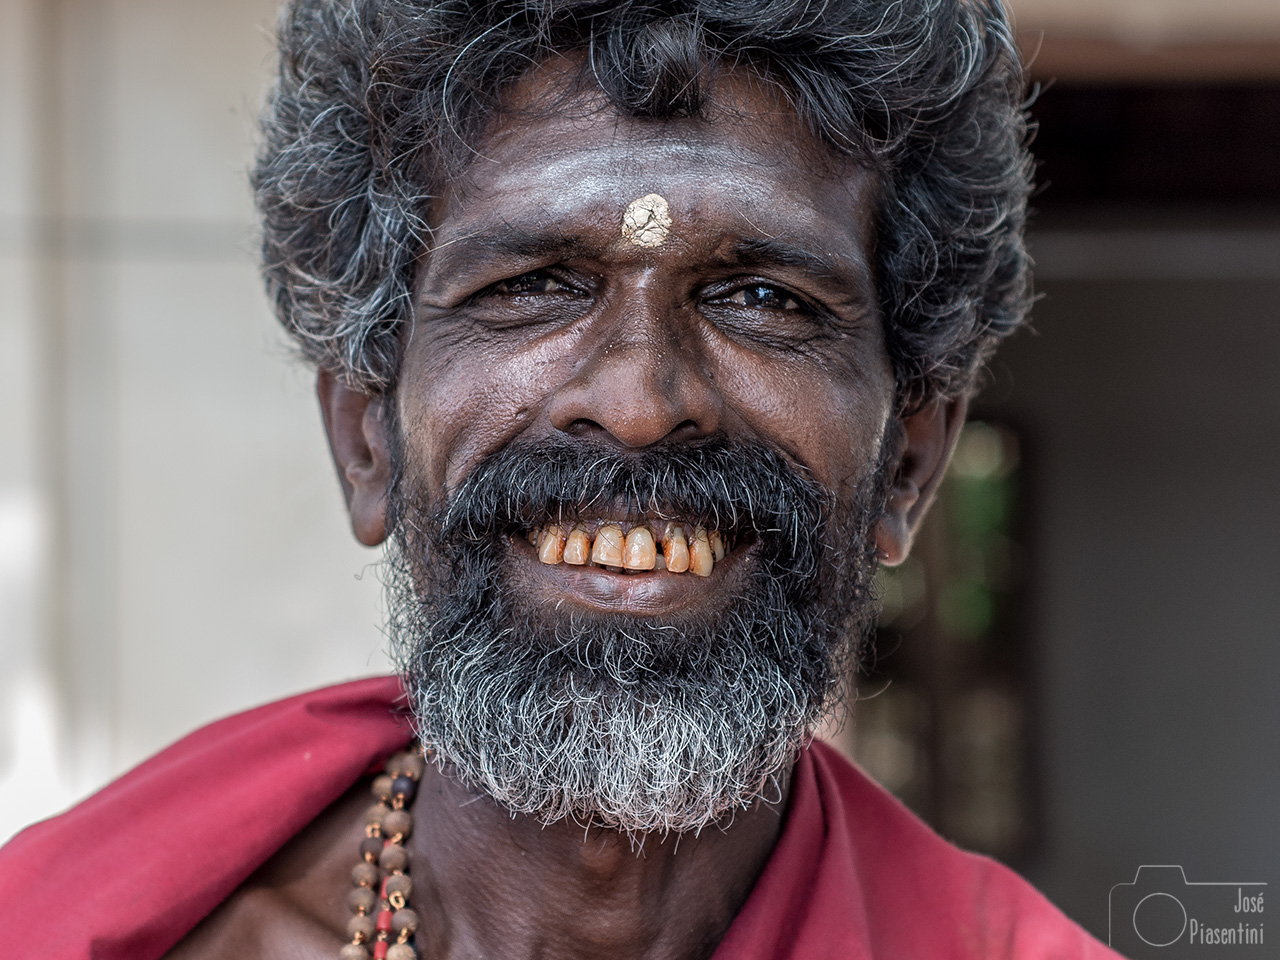 Trincomale - People of Sri Lanka